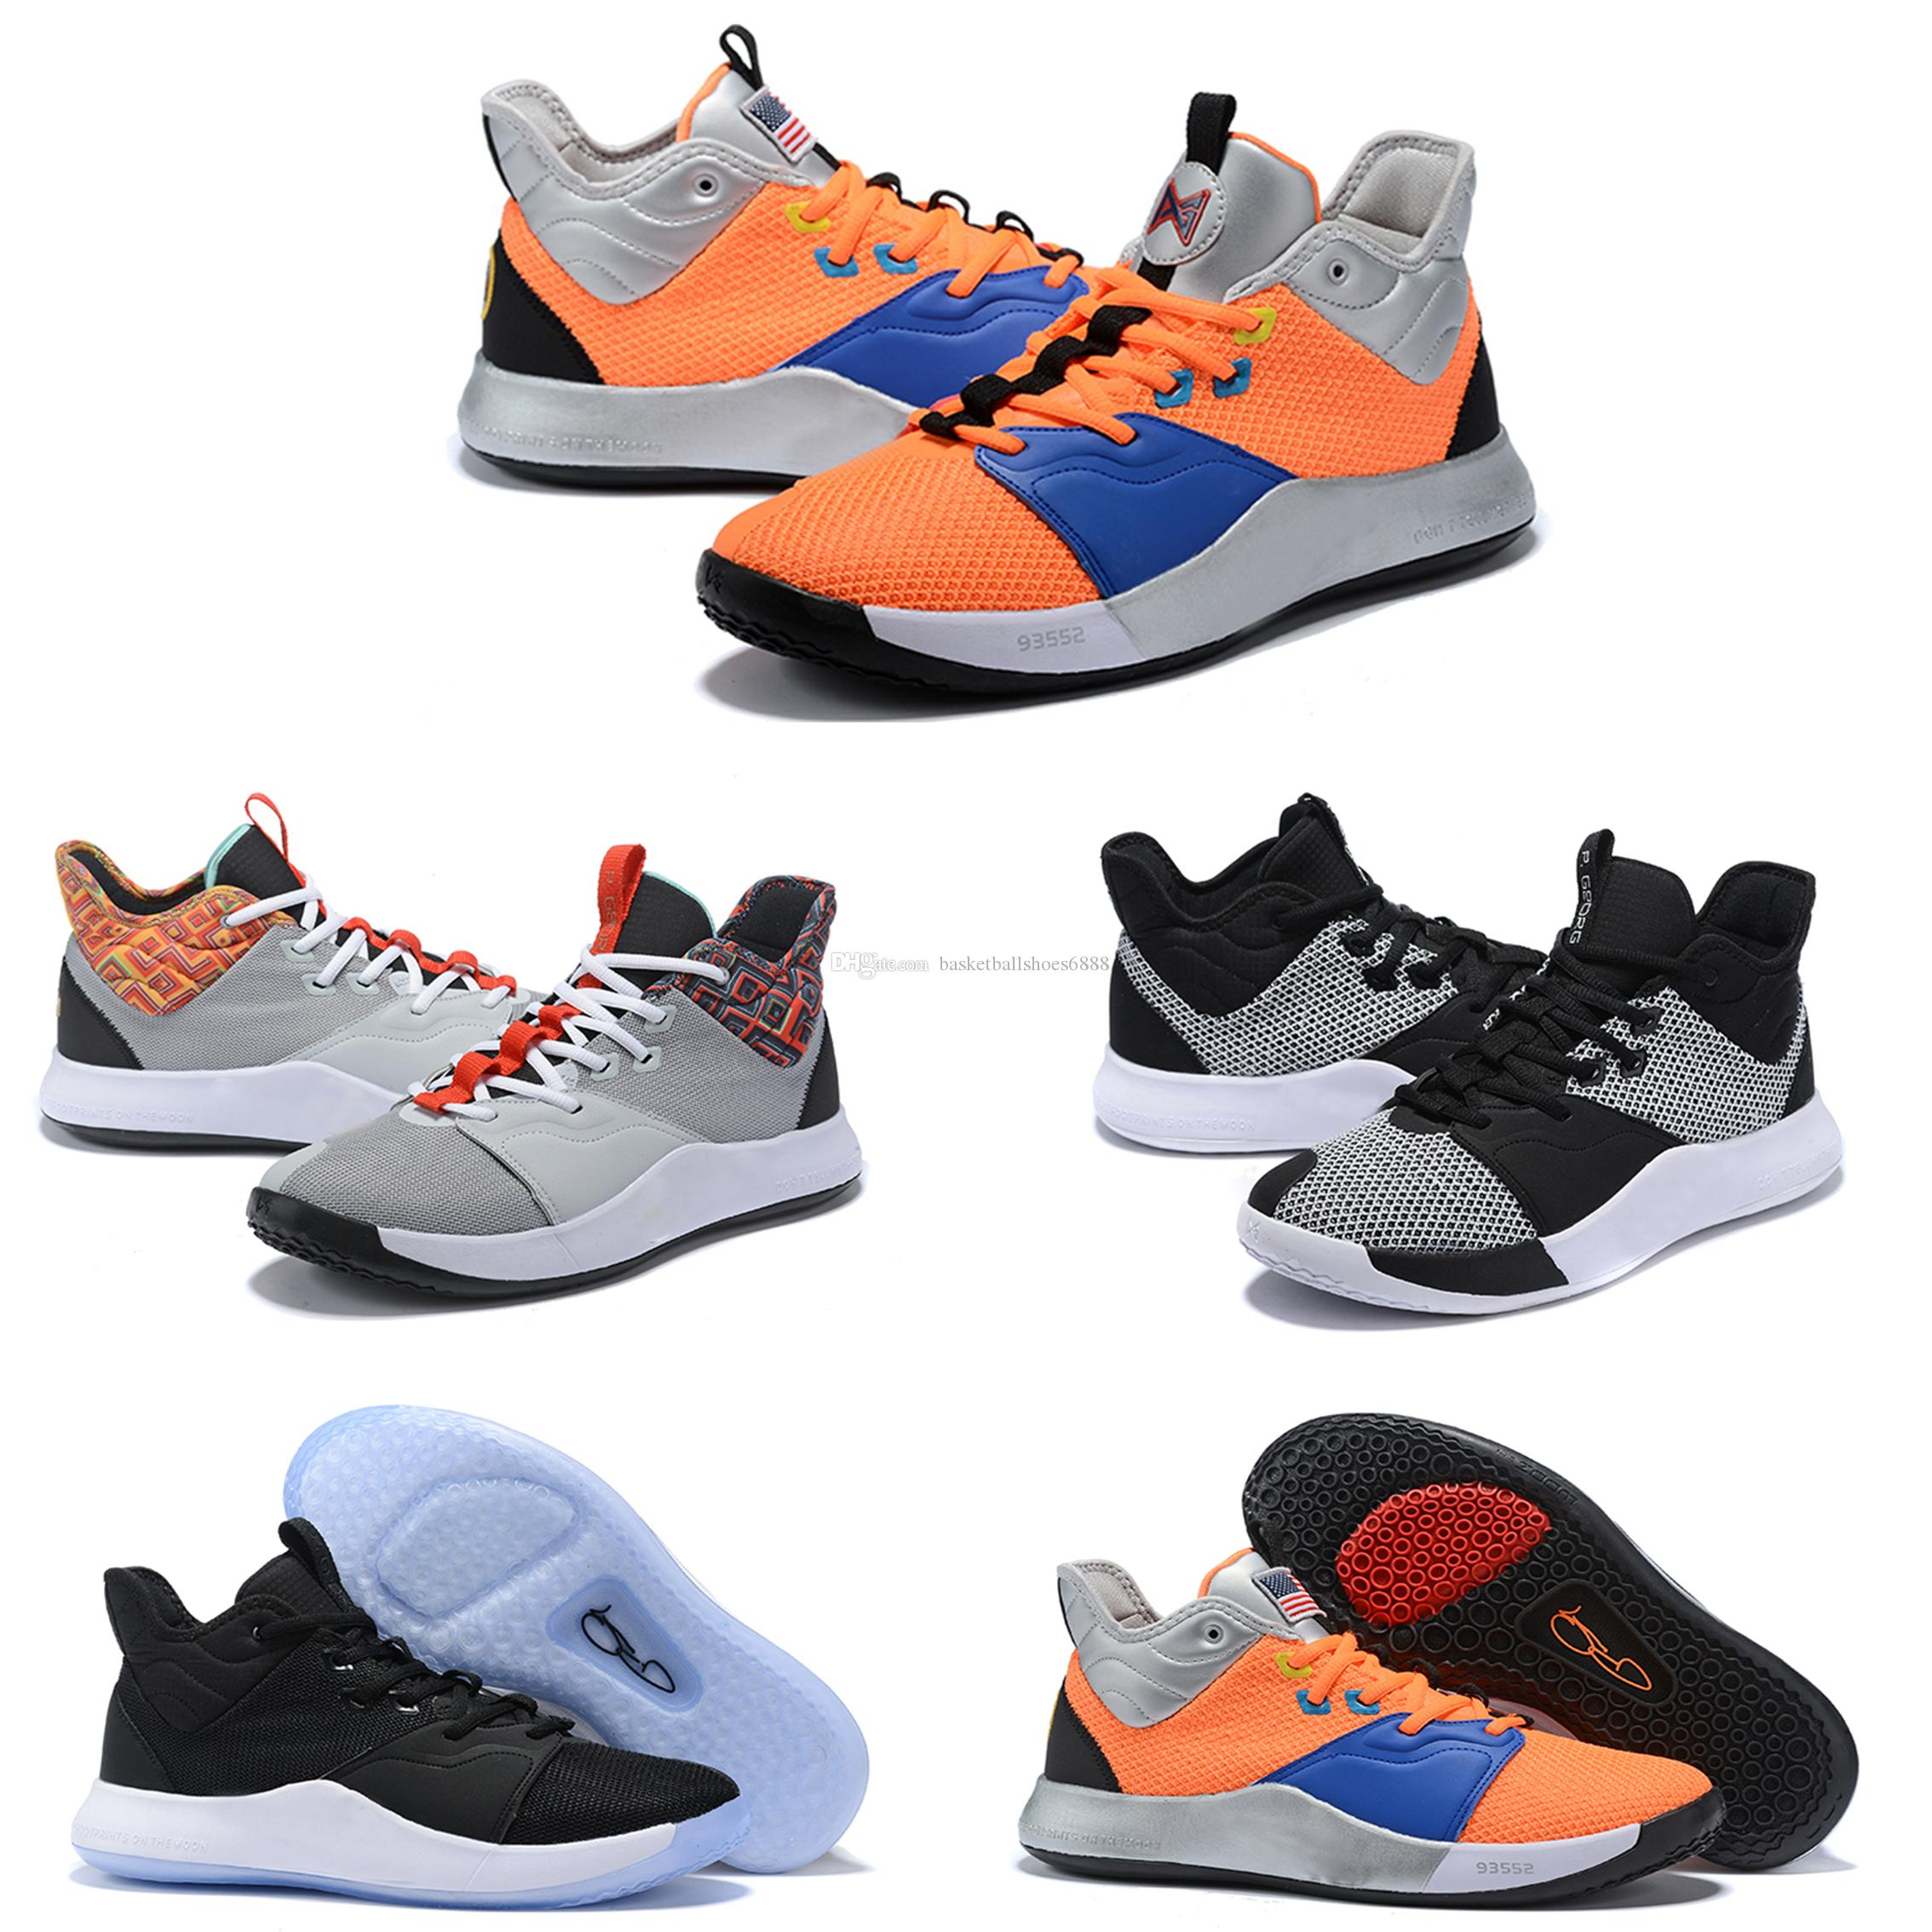 4feac974d 2019 2019 New Paul George PG 3 X EP Palmdale PlayStation Mens Basketball  Shoes USA Designer PG3 3s Casual Sneakers Size40 46 From  Basketballshoes6888, ...